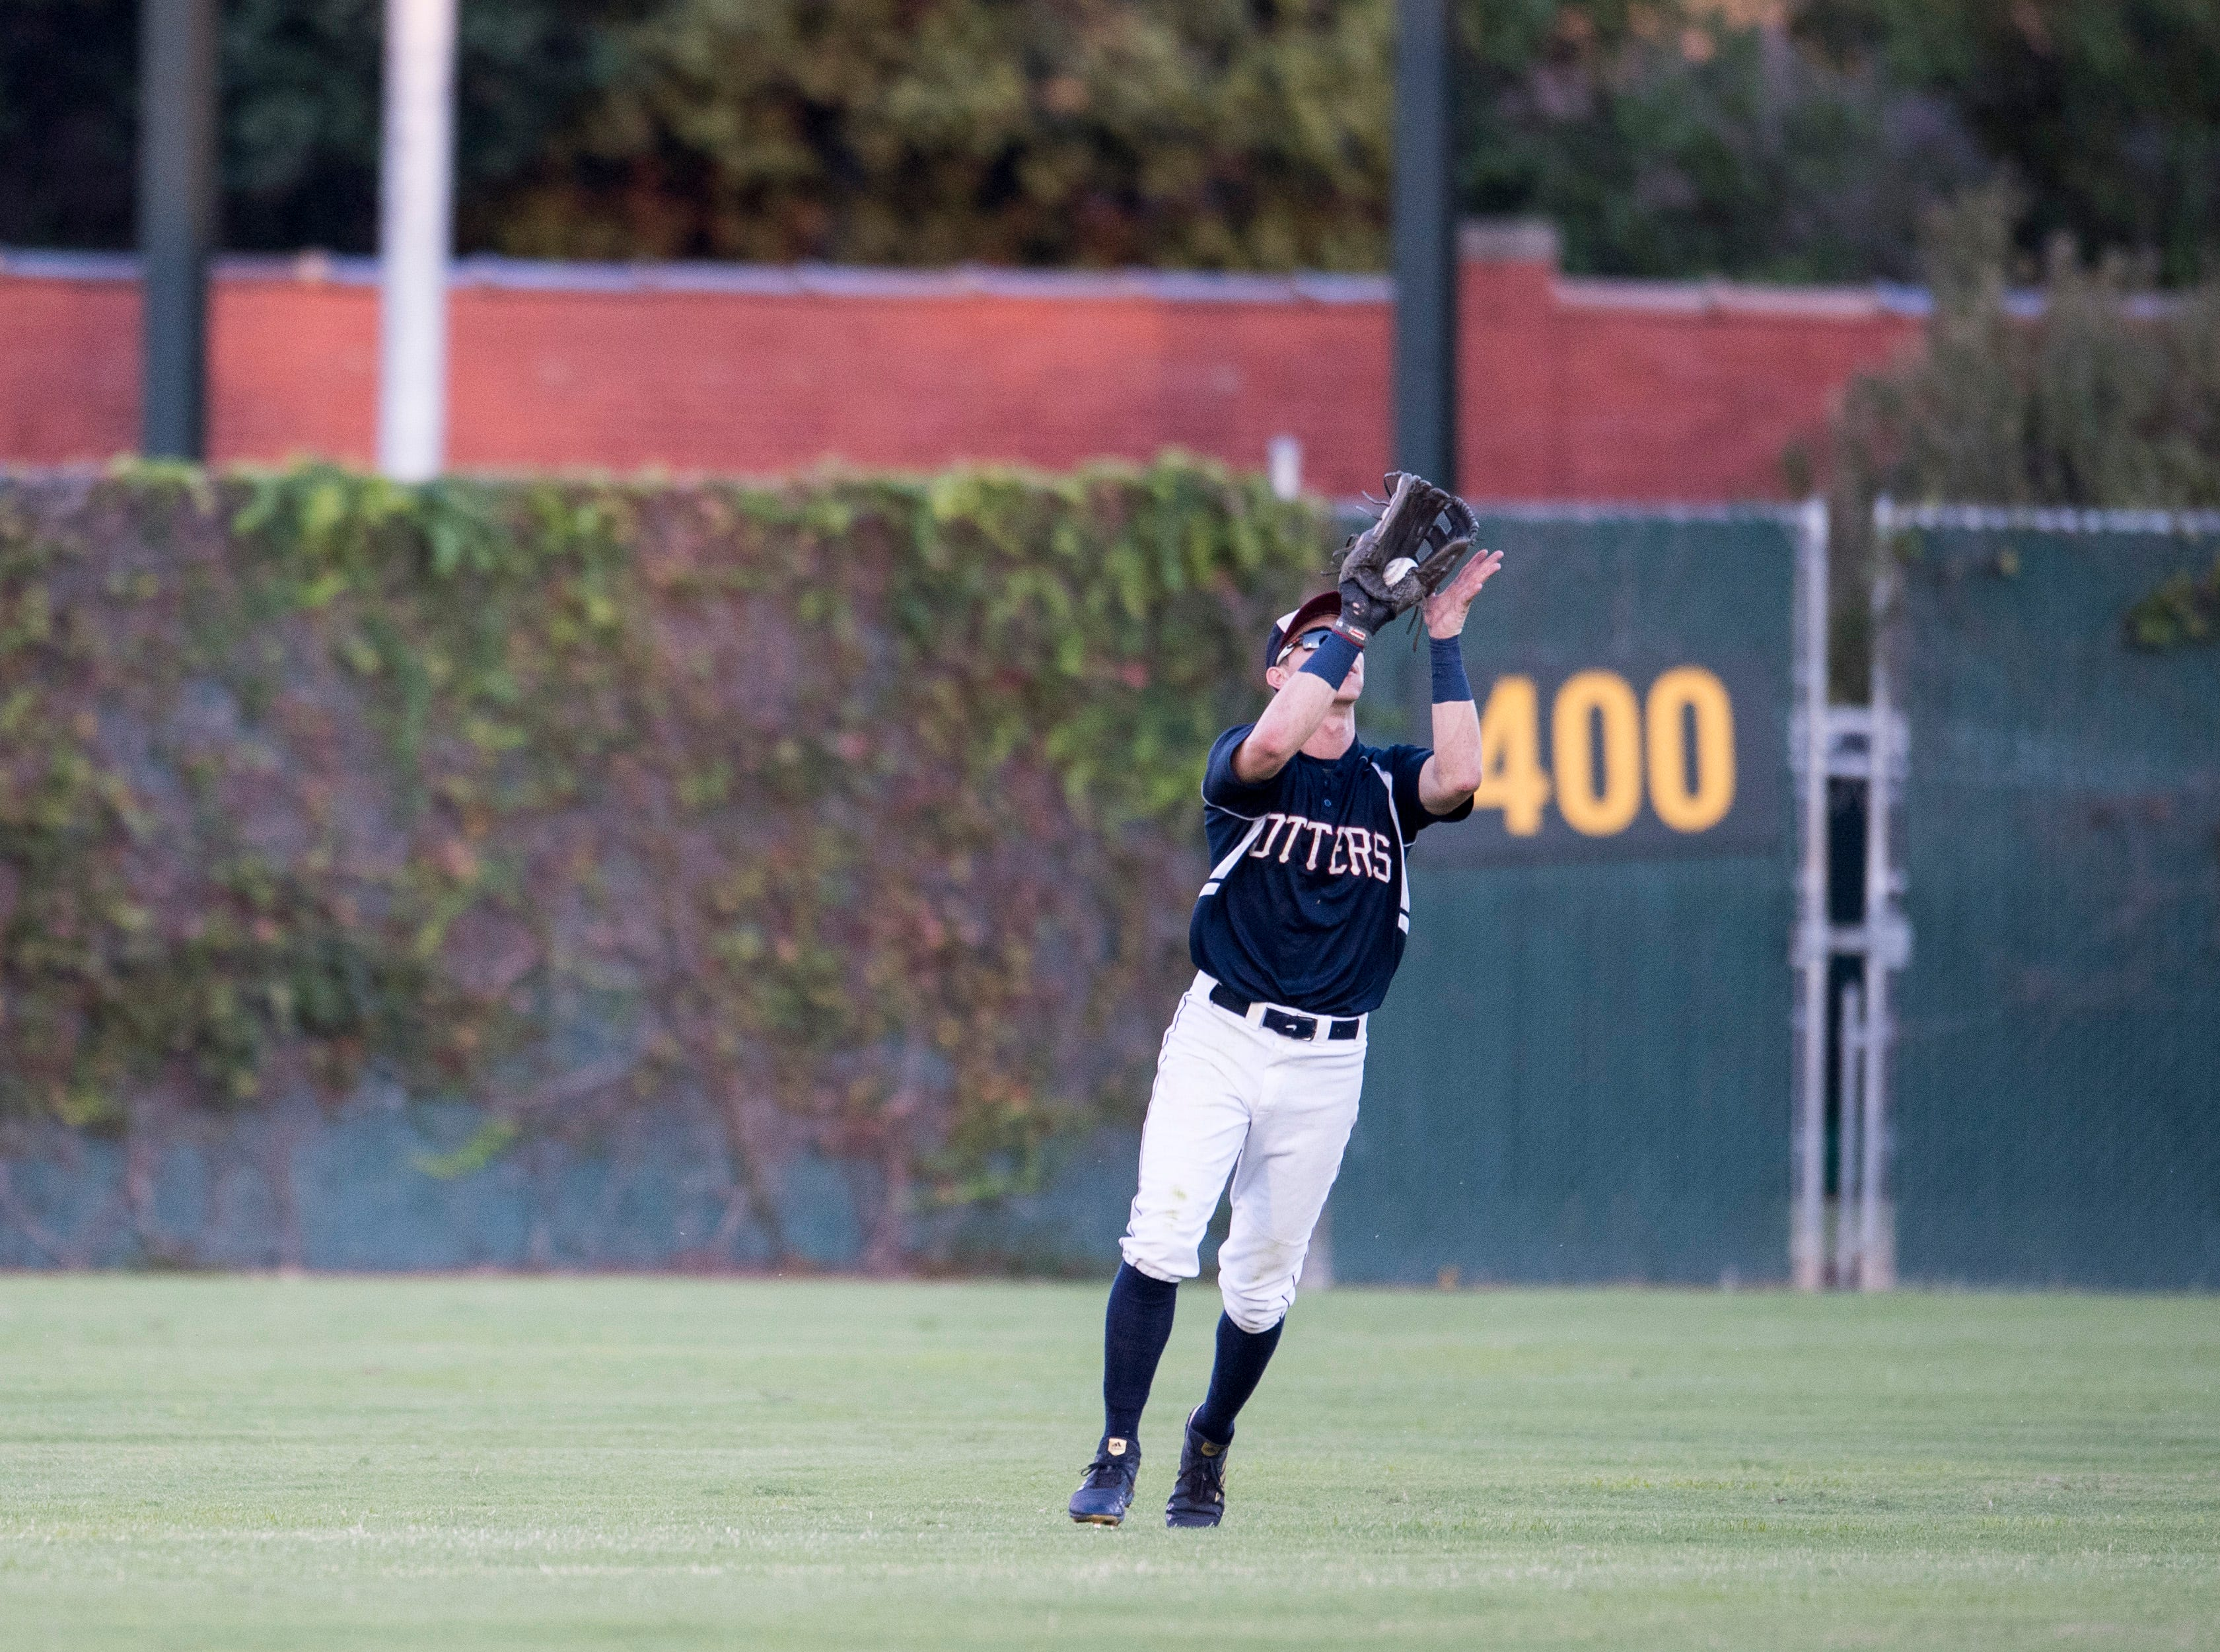 Evansville's Hunter Cullen (43) catches a pop fly during game two of the Frontier League Division Series at Bosse Field against the Washington Wild Things Wednesday, September 5, 2018.